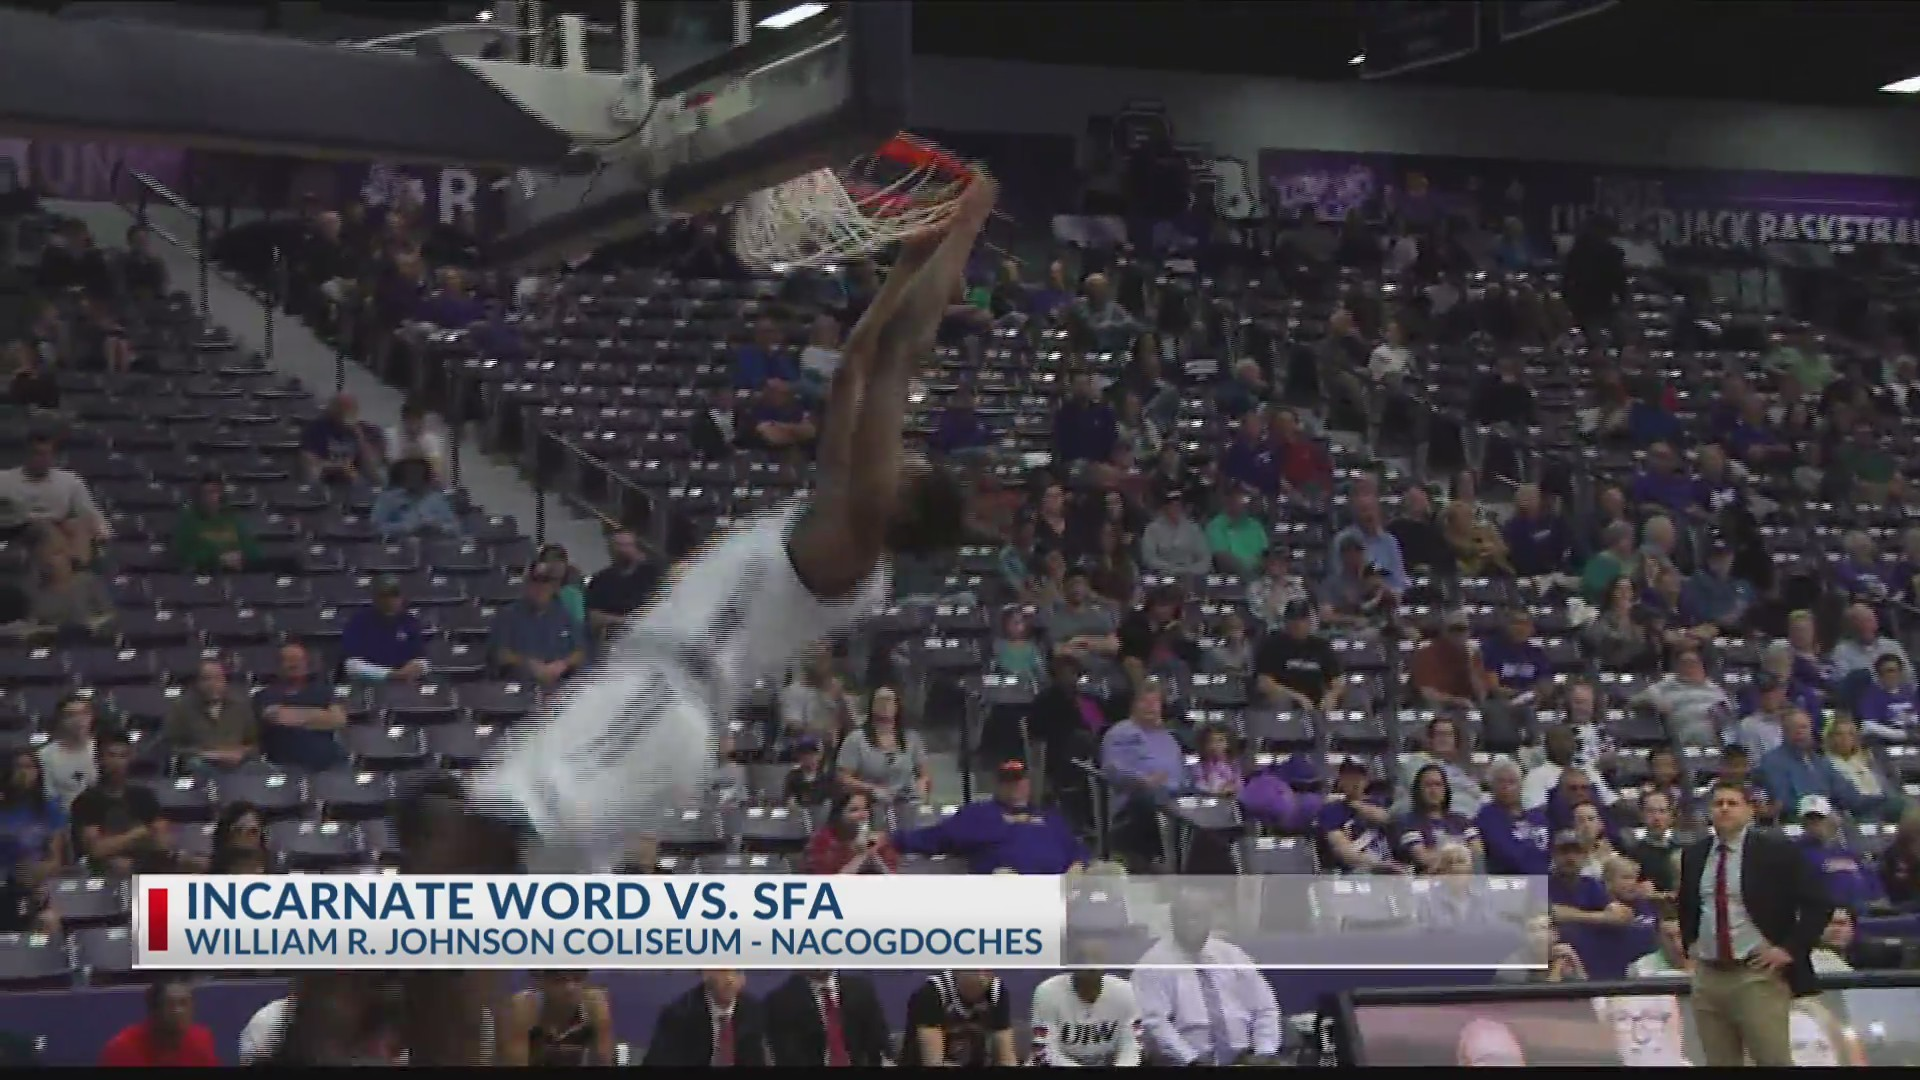 SFA_sweeps_Incarnate_Word_0_20190224043530